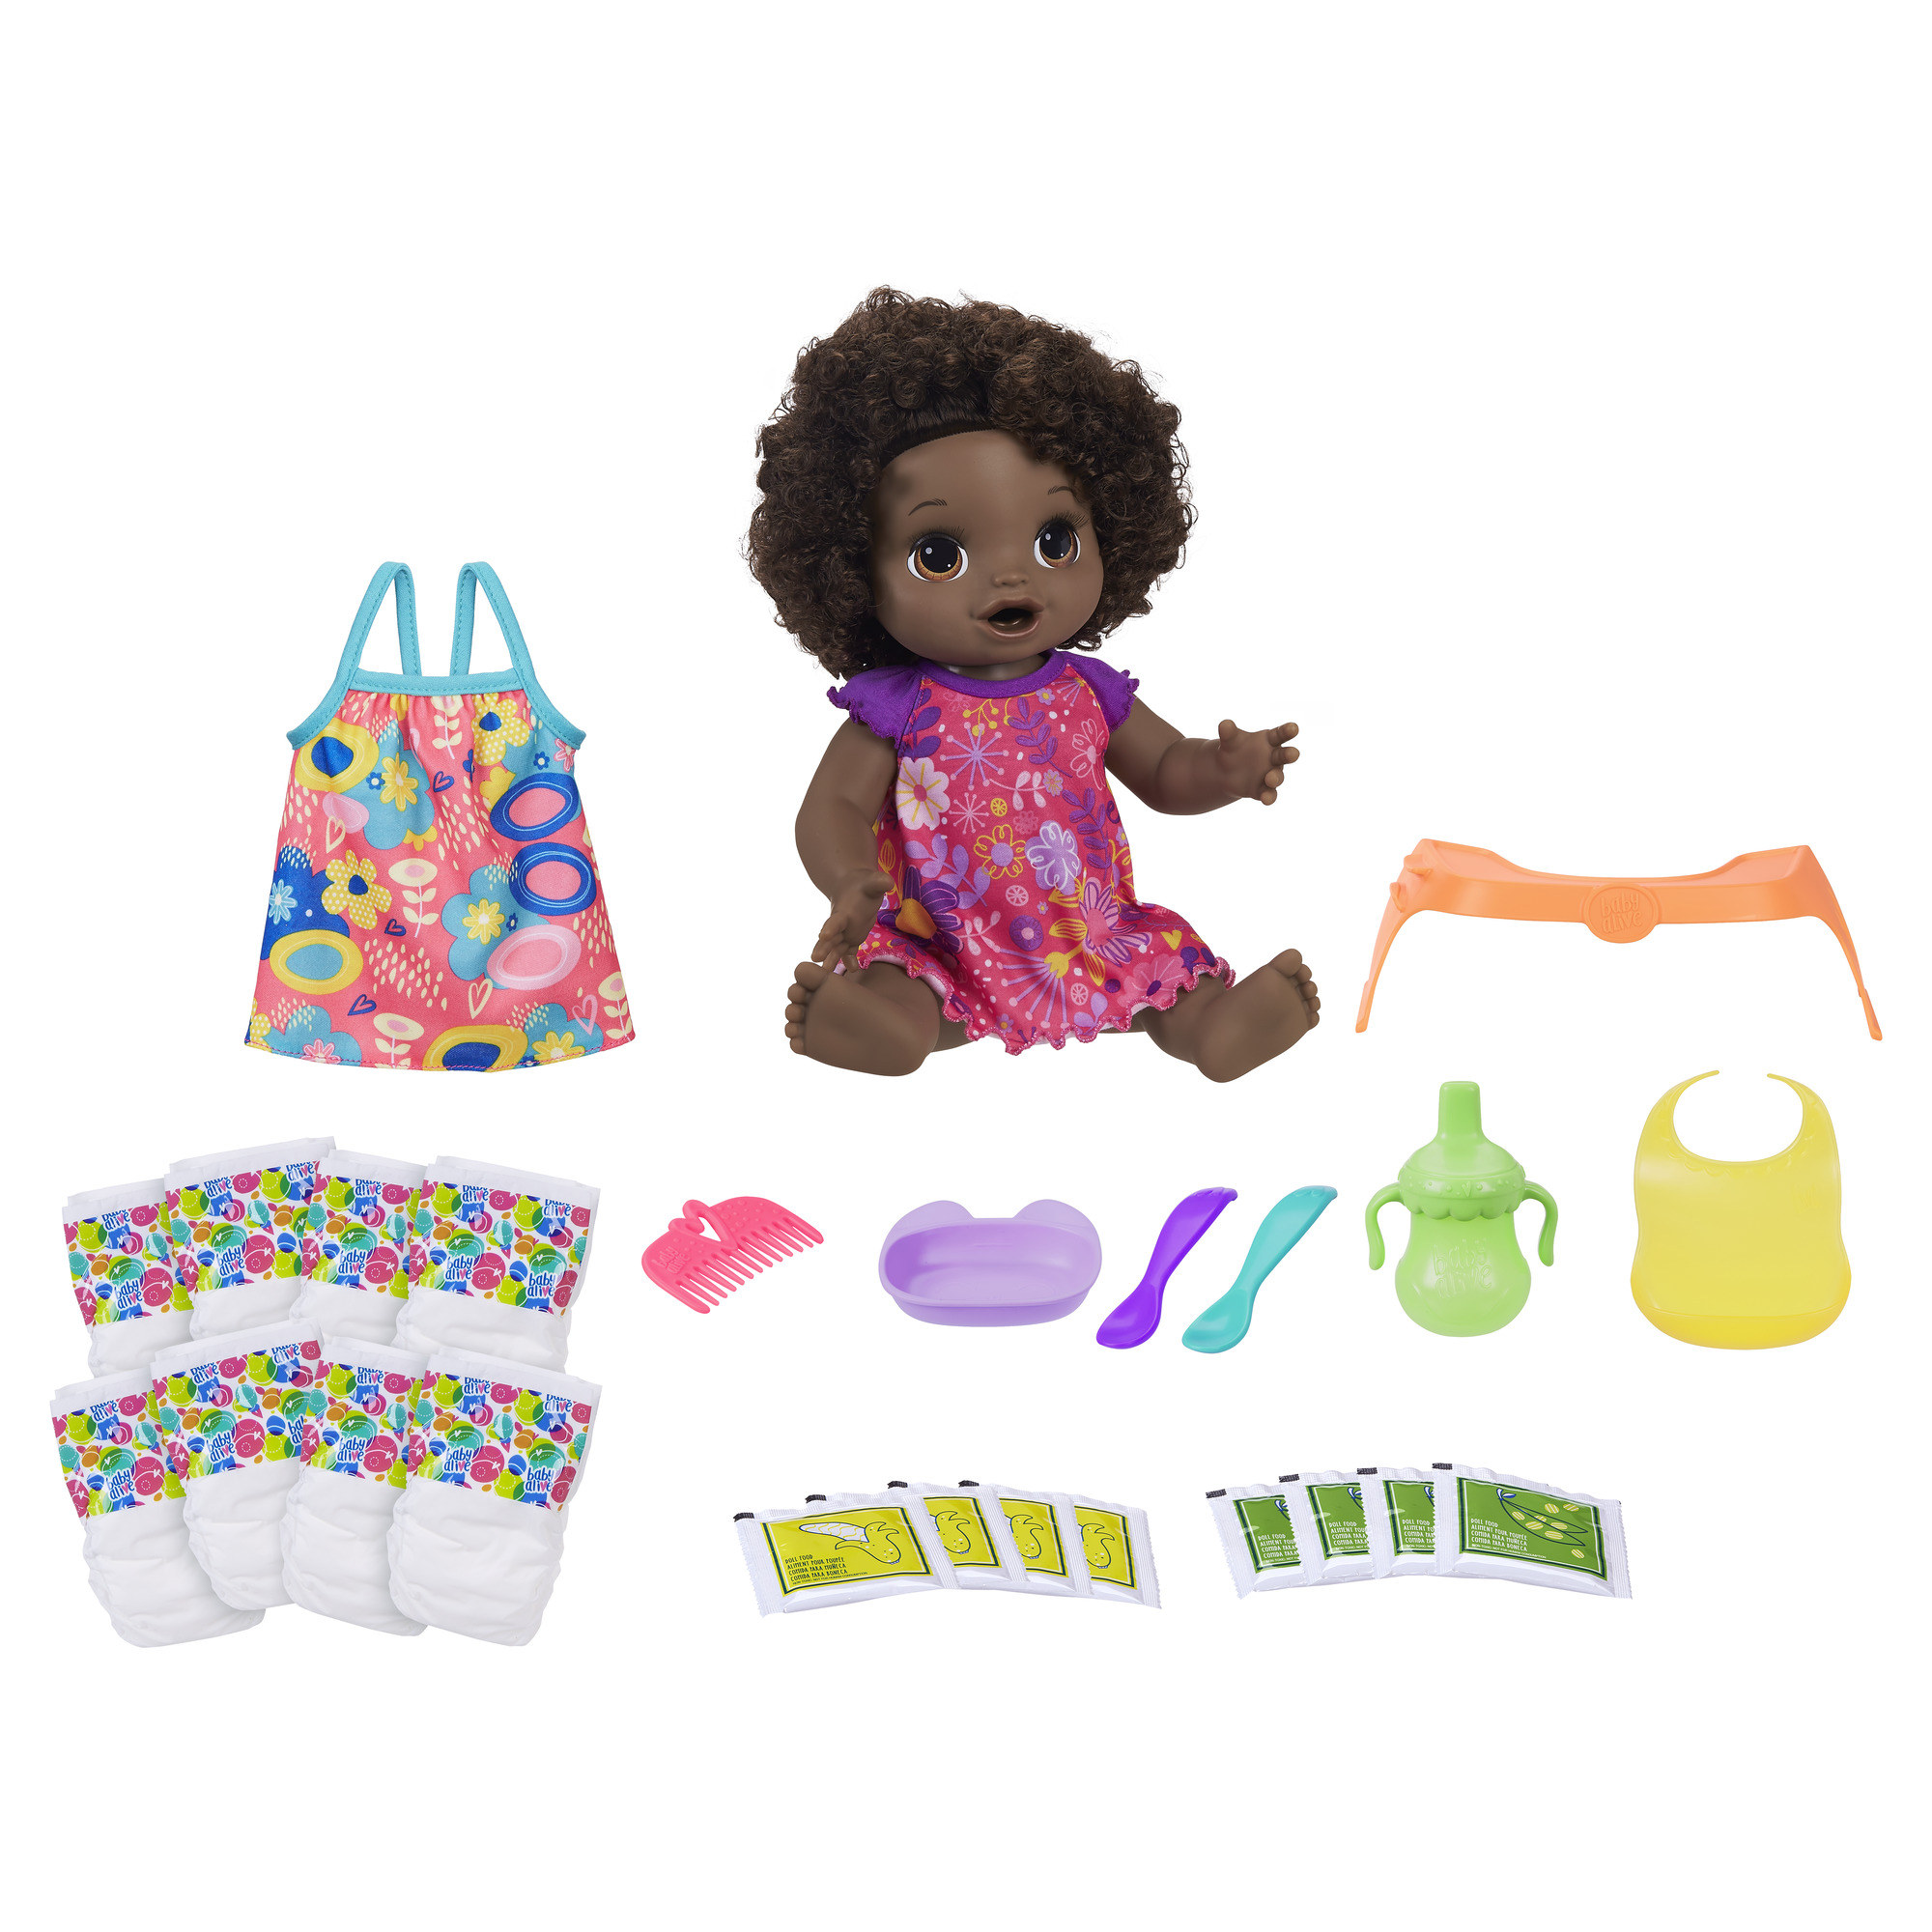 Baby Alive Happy Hungry Baby Black Curly Hair 50 Sounds Eats Drinks Walmart Com Walmart Com